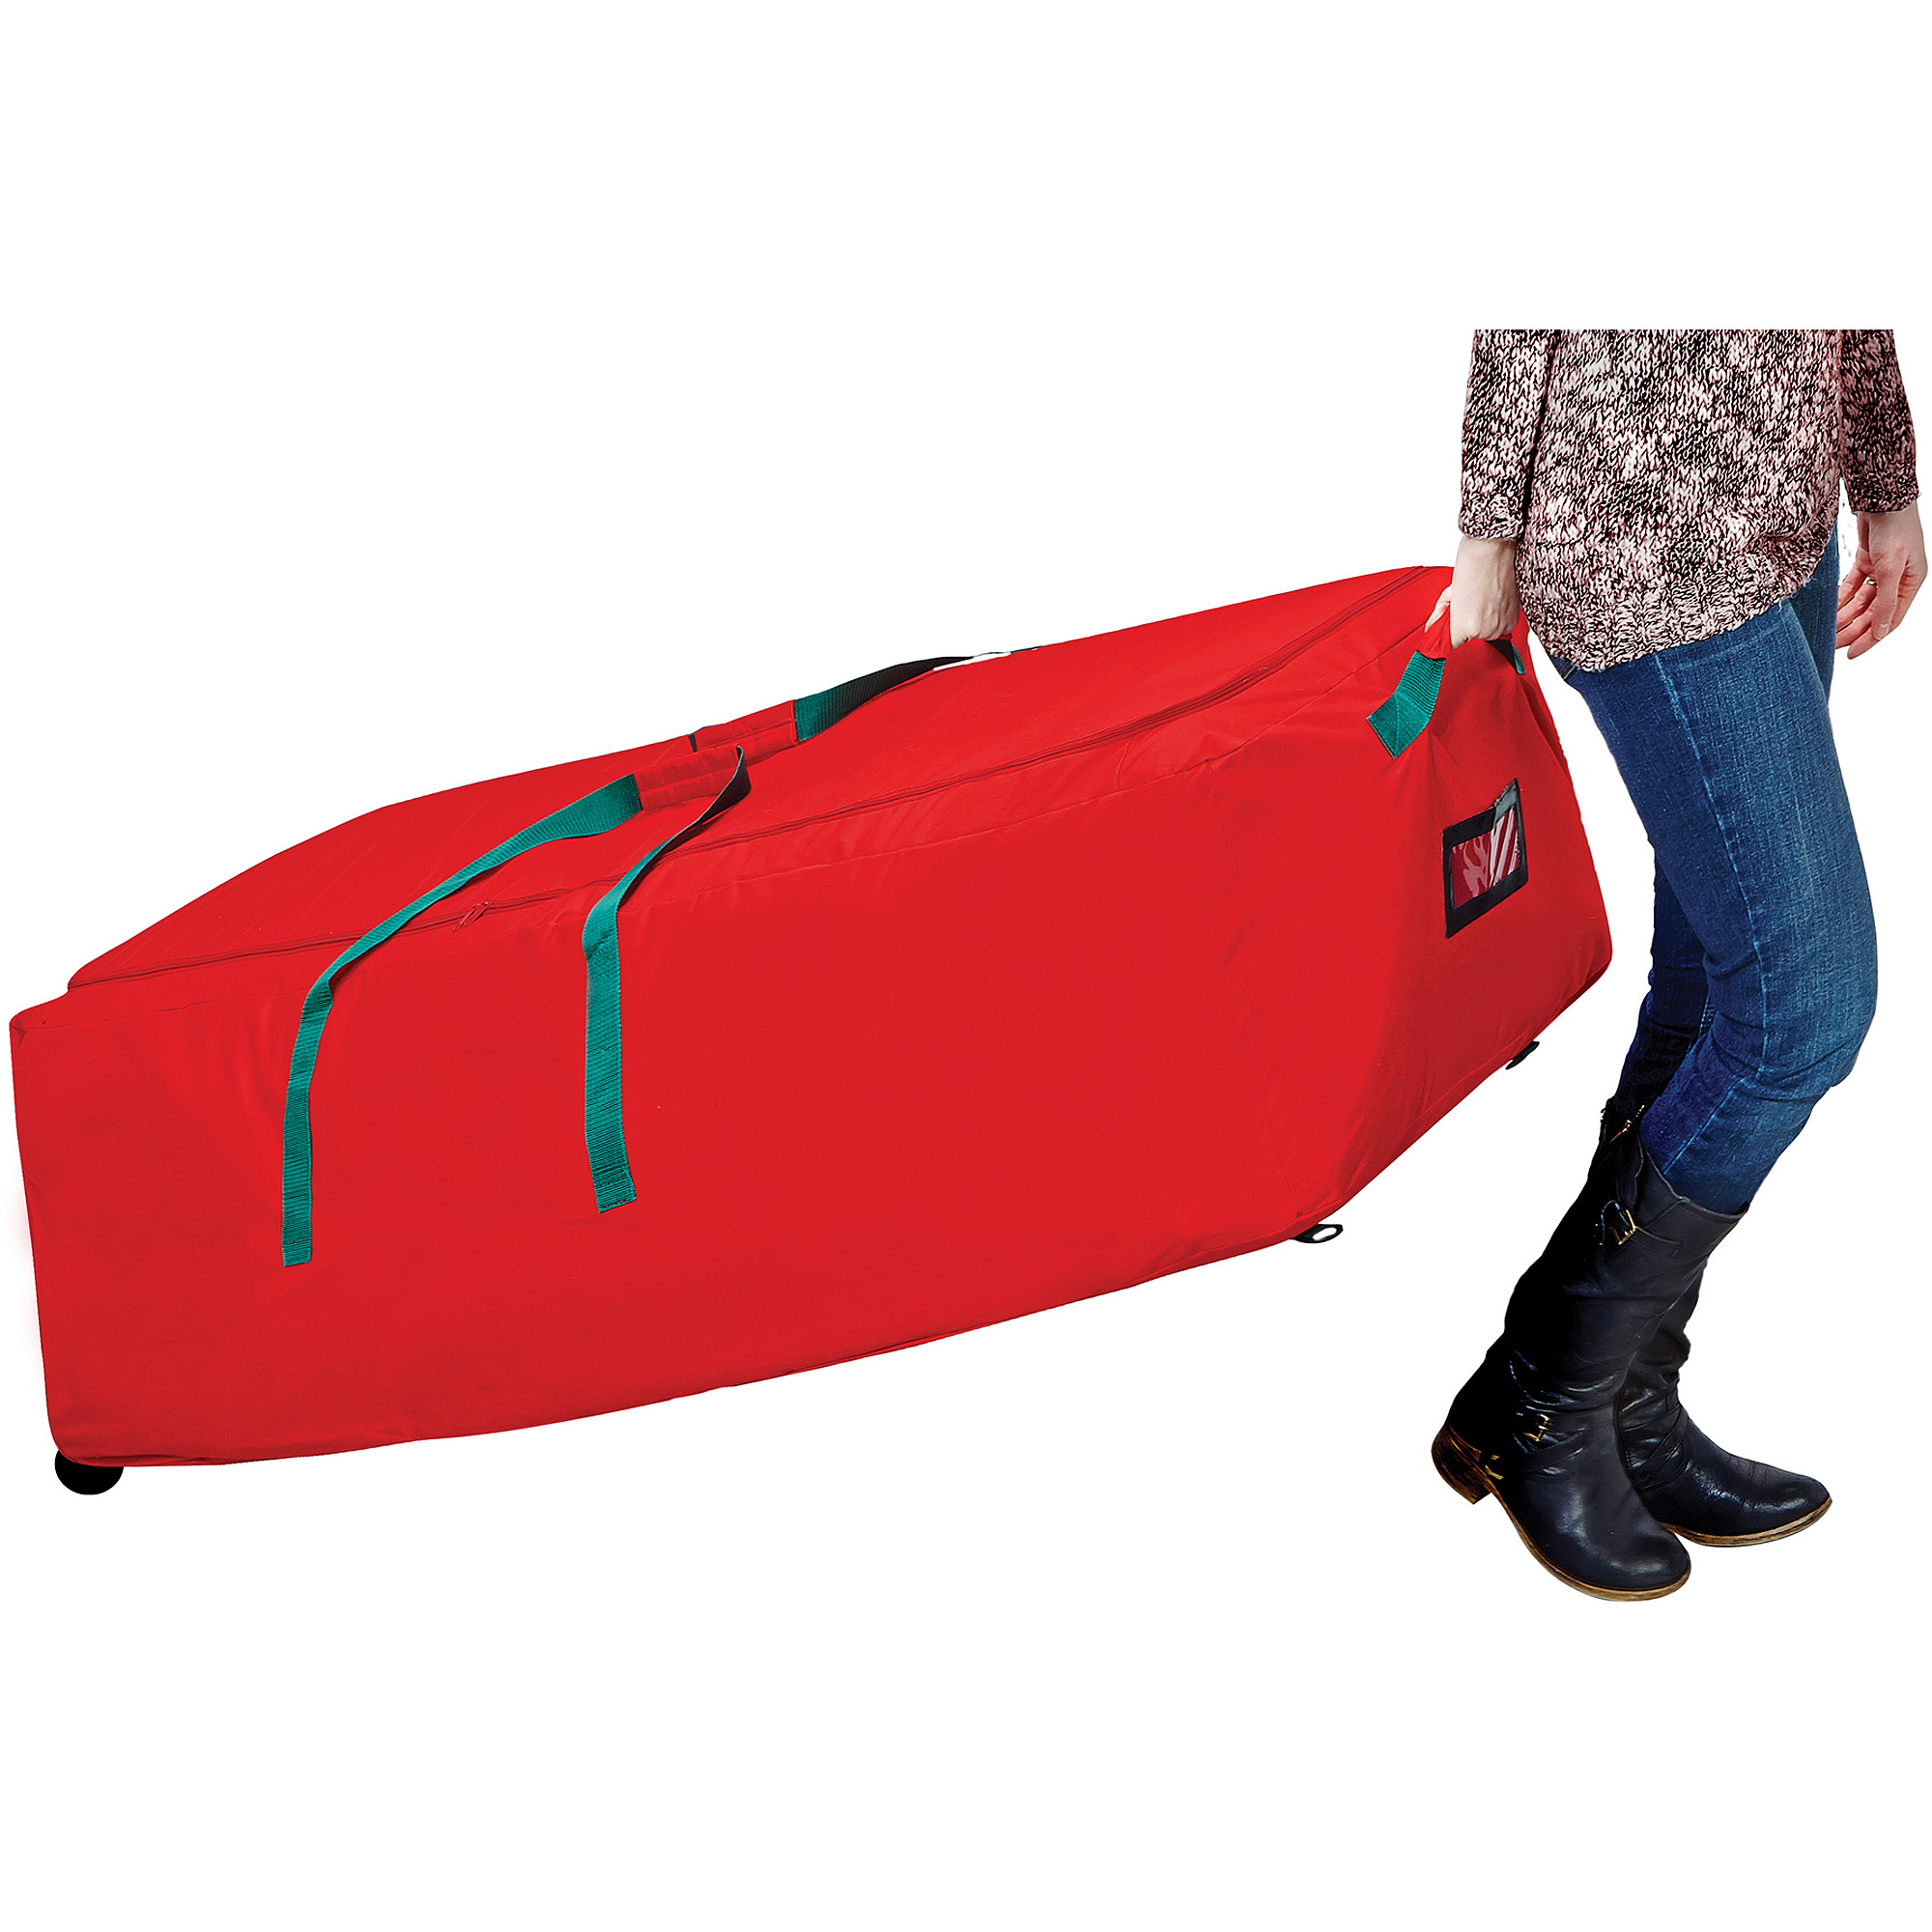 Simplify Christmas Tree Storage Bag With Wheels, Red